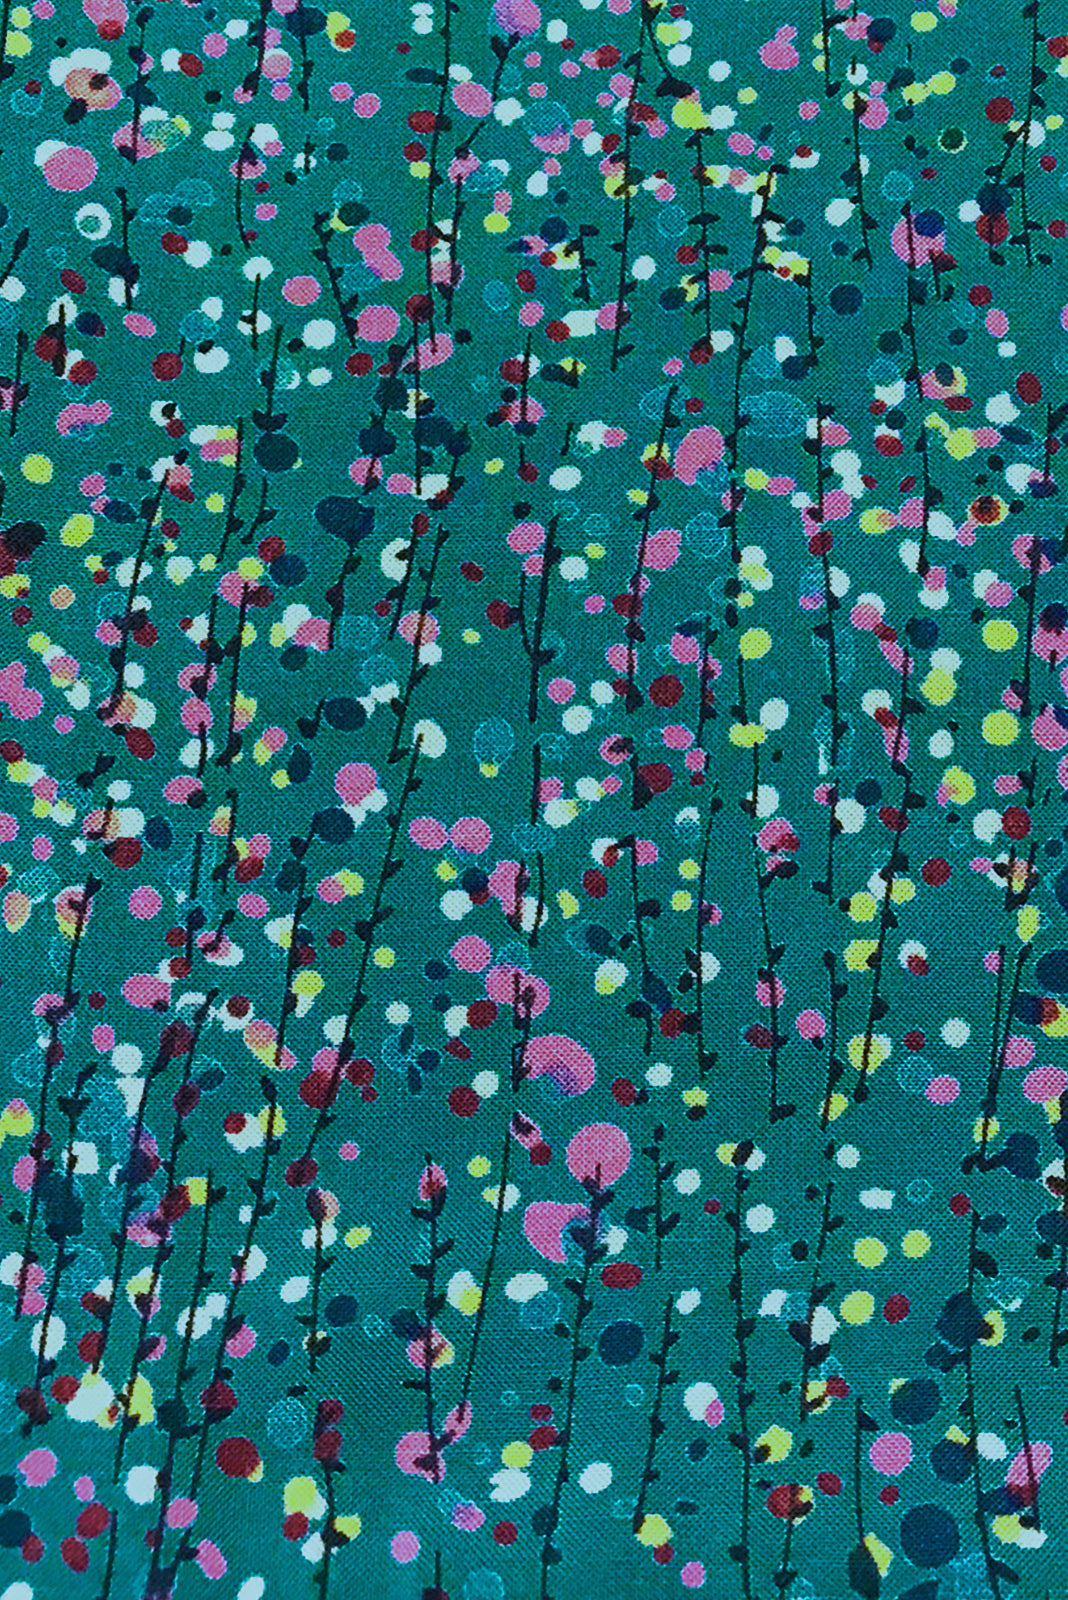 Fabric Swatch of Sally Trellis Teal Mini Dress featuring woven 100% rayon in teal base with petite water coloured vine print.